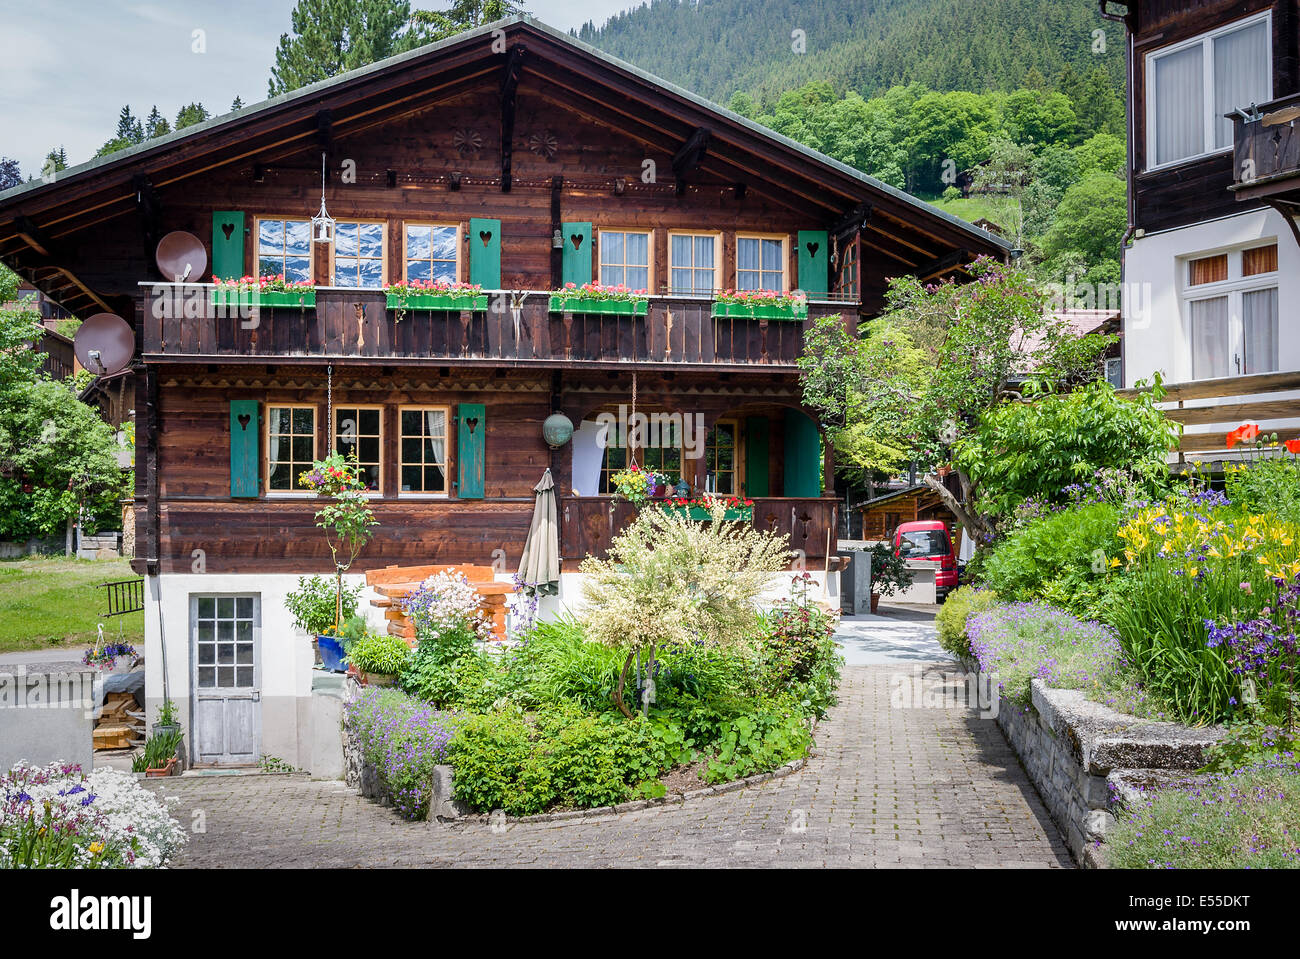 Wooden Chalet Typical Of Swiss Architecture In Wengen